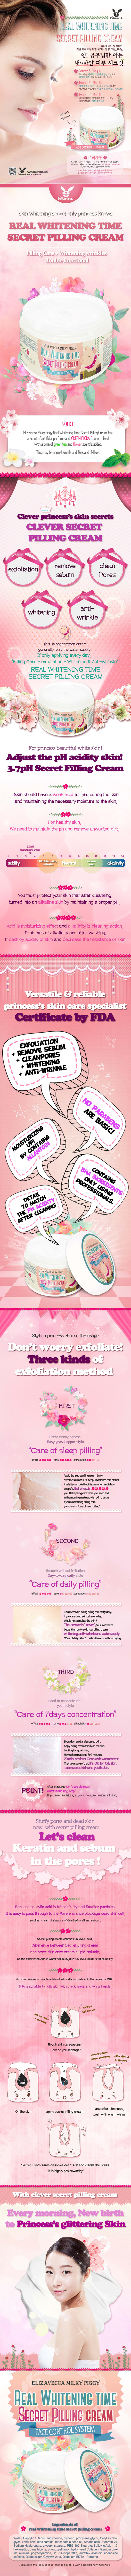 Milky Piggy Real Whitening Time Secret Pilling Cream 100g How to Use Description Ingredients